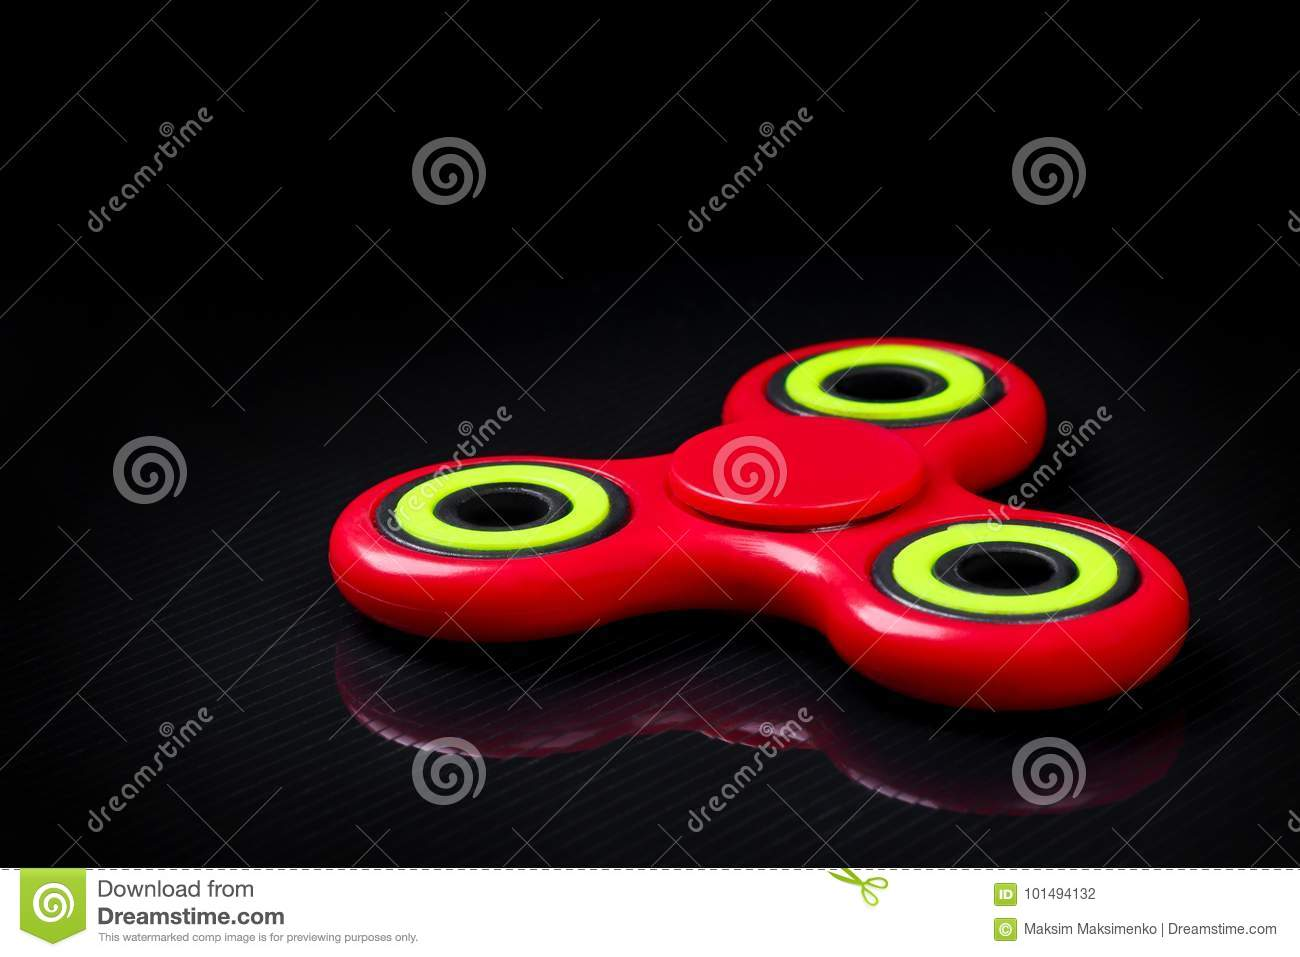 Close-up shot of red-green fidget finger spinner on black gloss background.